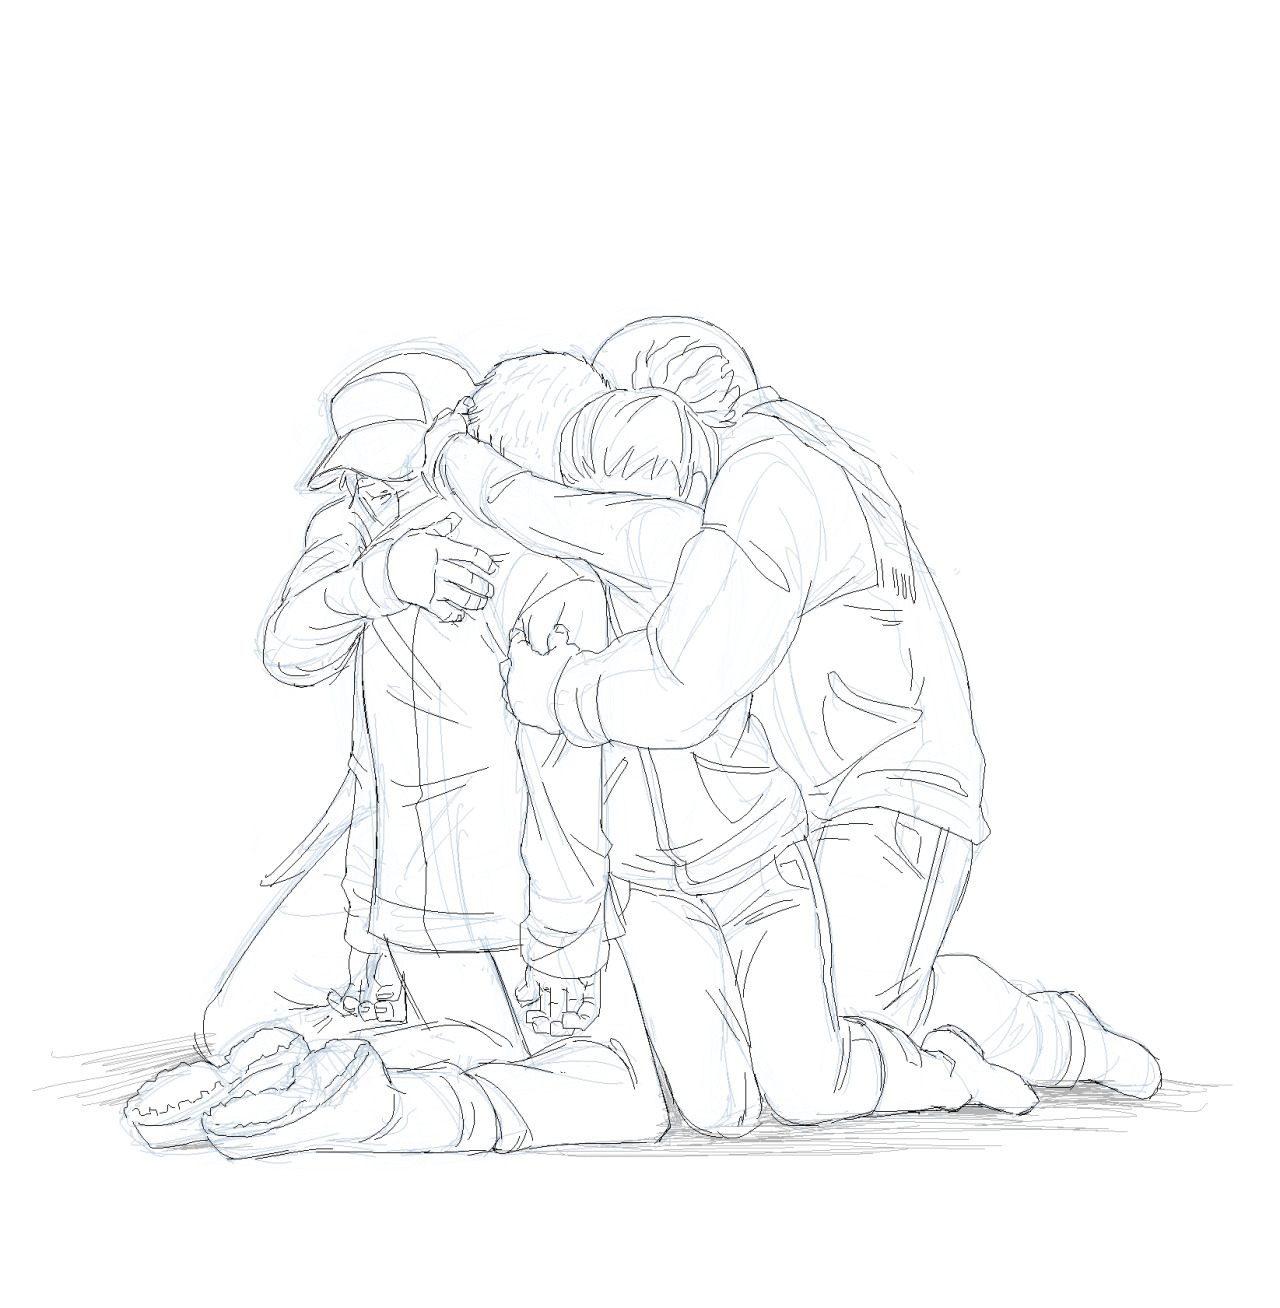 1280x1308 SnufkinWasHere, group hug, group pose